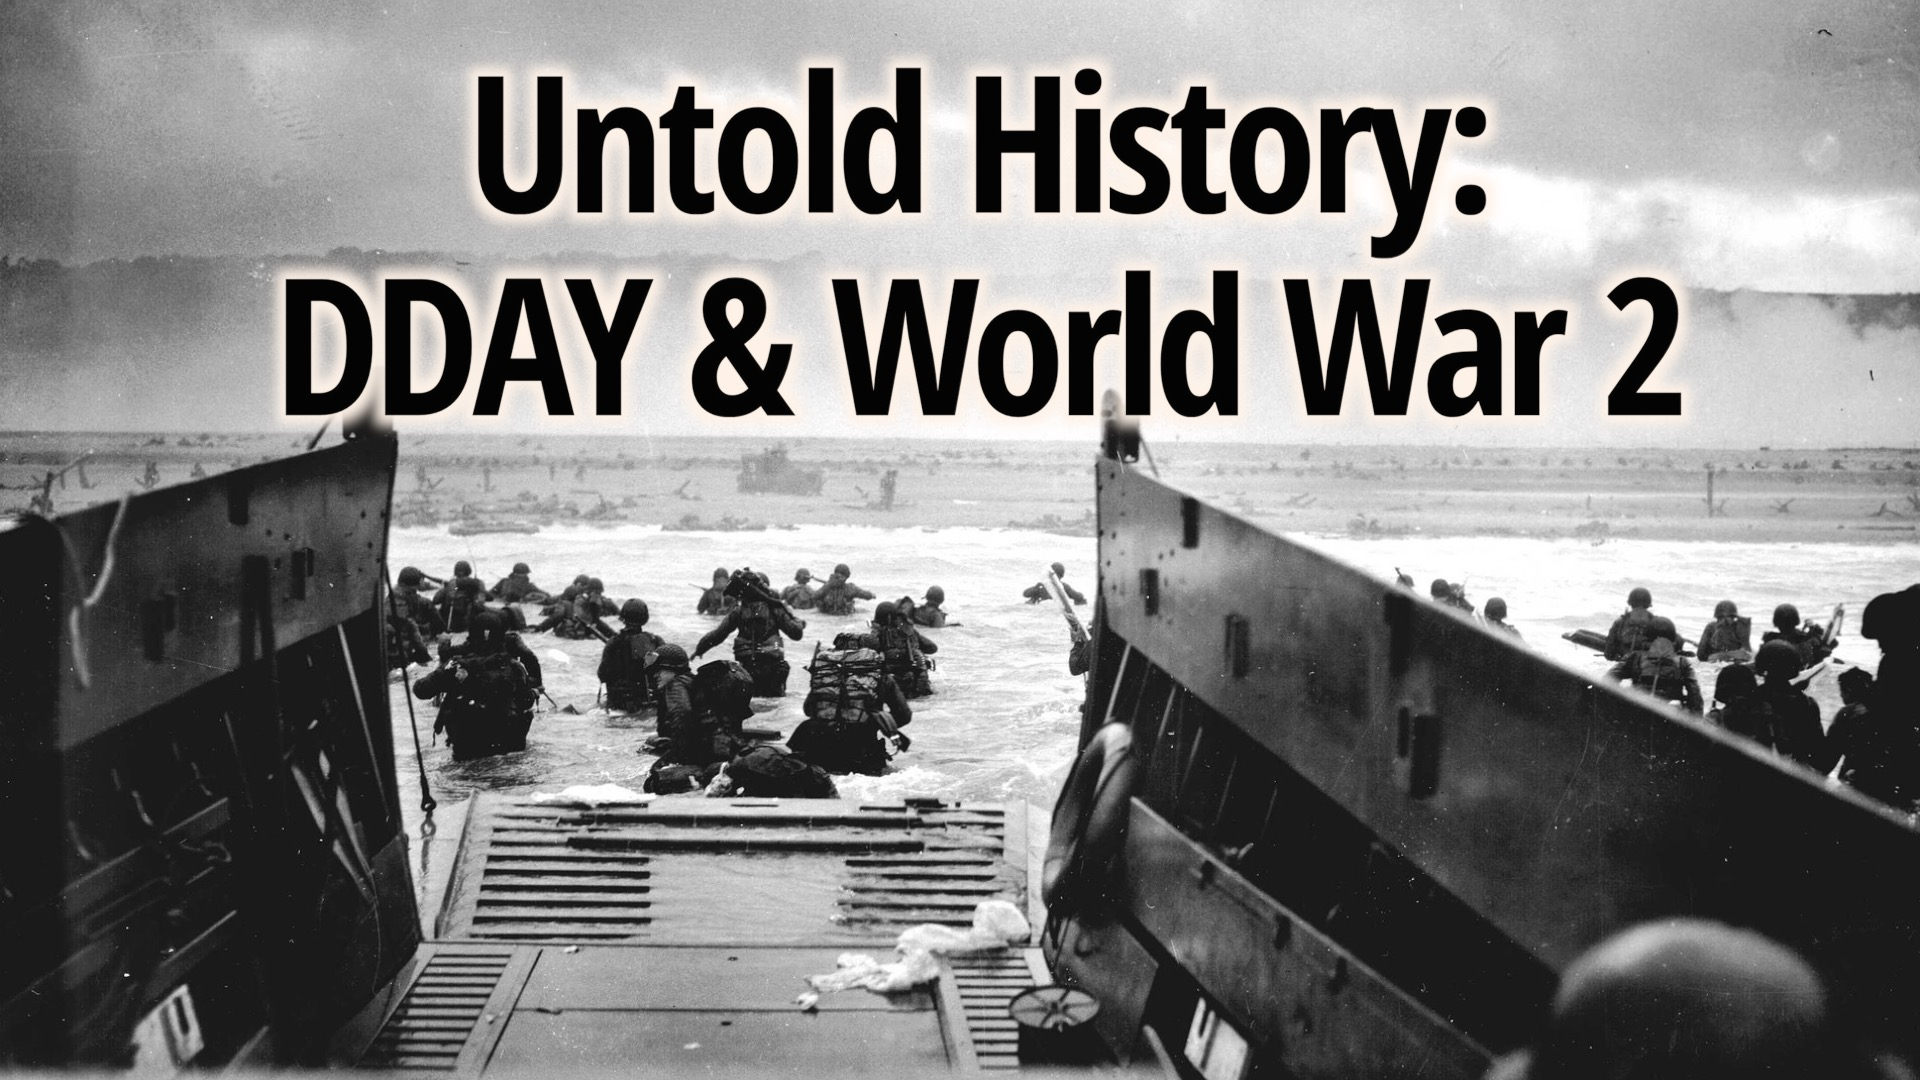 Untold History of the United States: DDAY & World War II